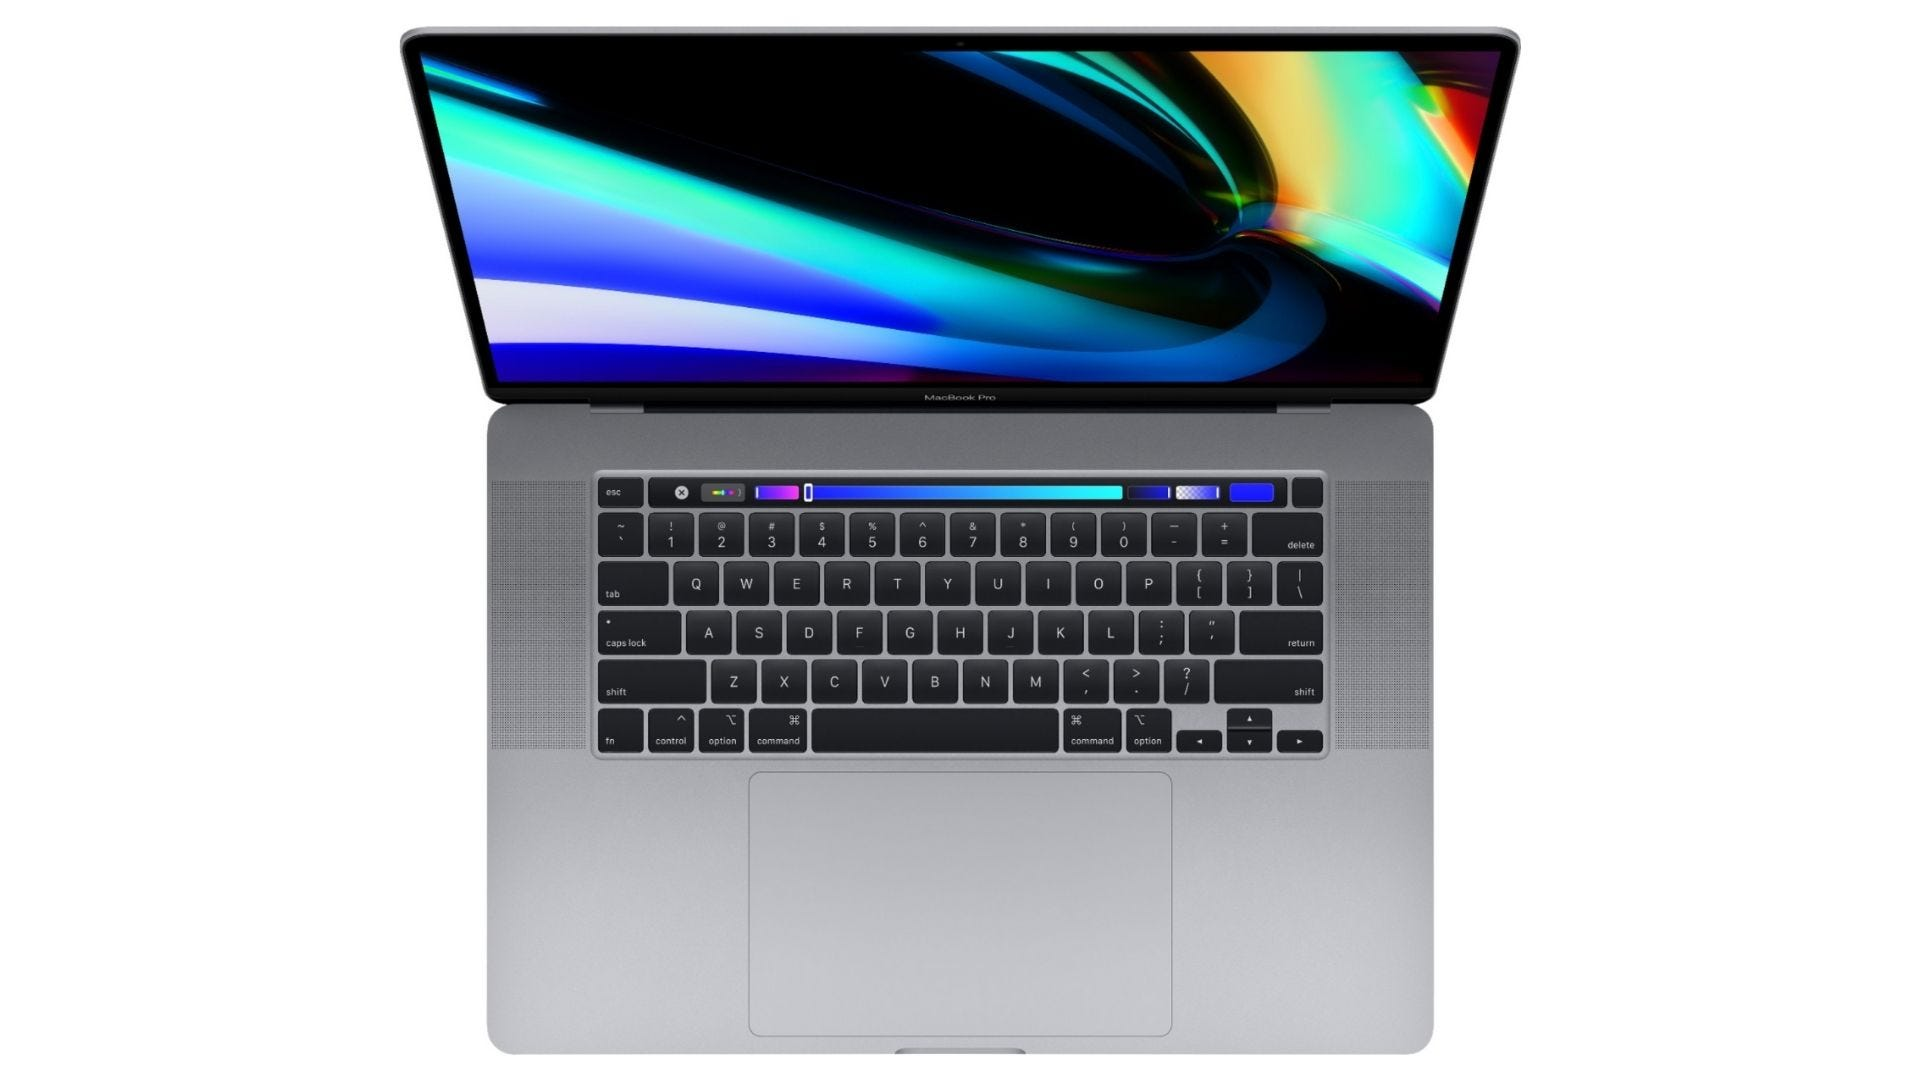 Apple - MacBook Pro - 16 Display with Touch Bar